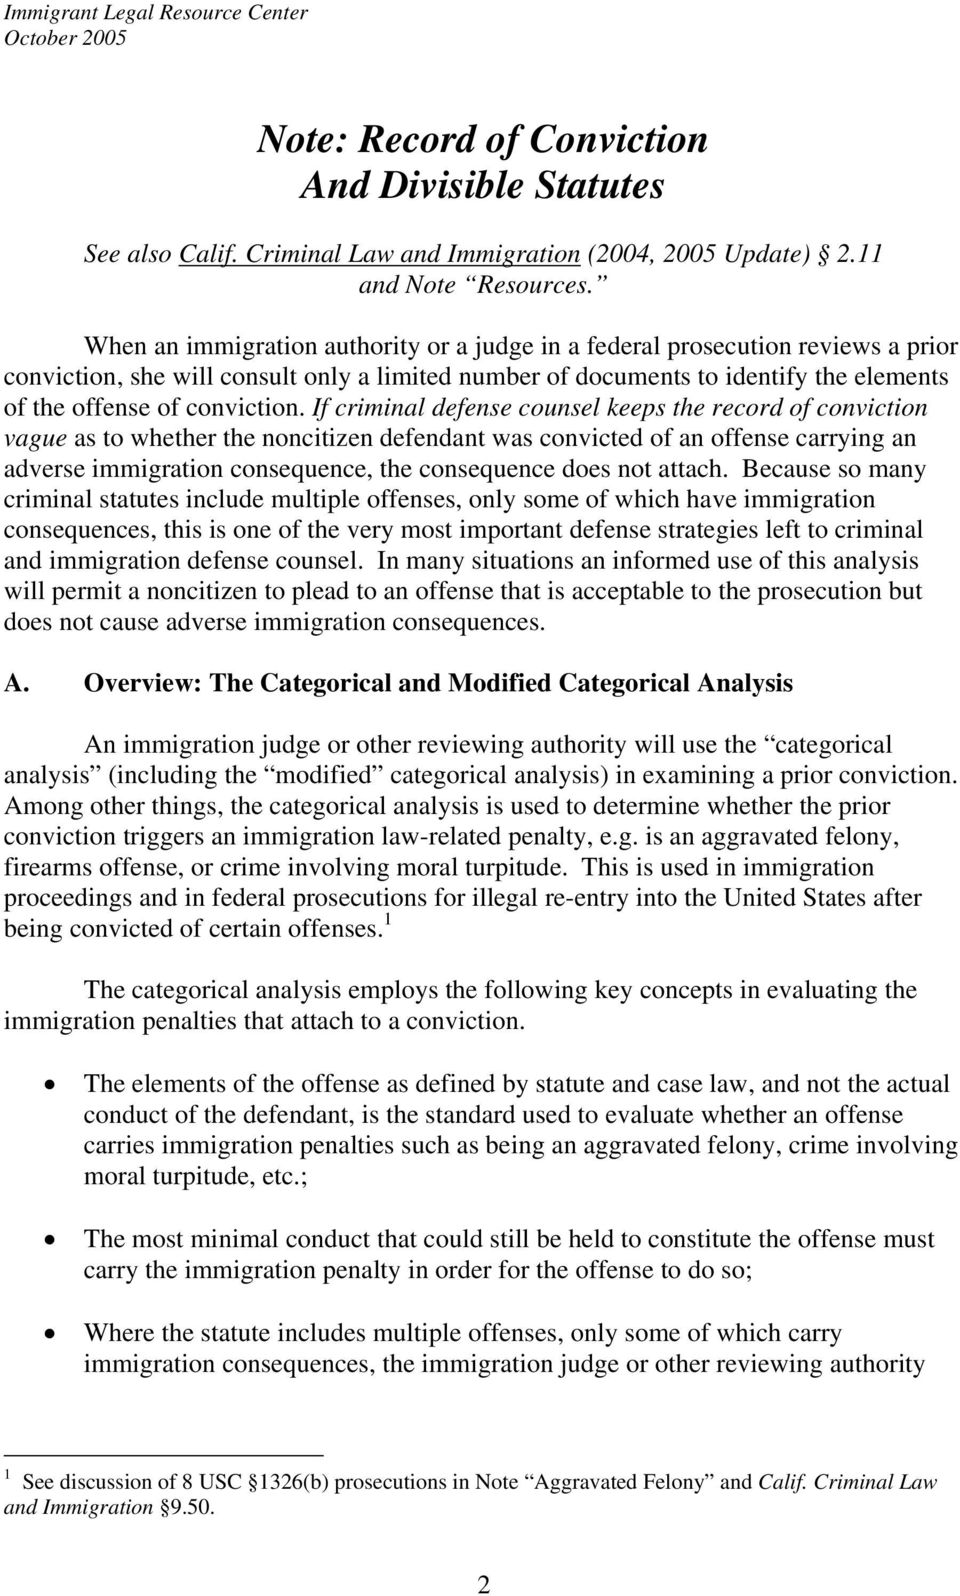 If criminal defense counsel keeps the record of conviction vague as to whether the noncitizen defendant was convicted of an offense carrying an adverse immigration consequence, the consequence does